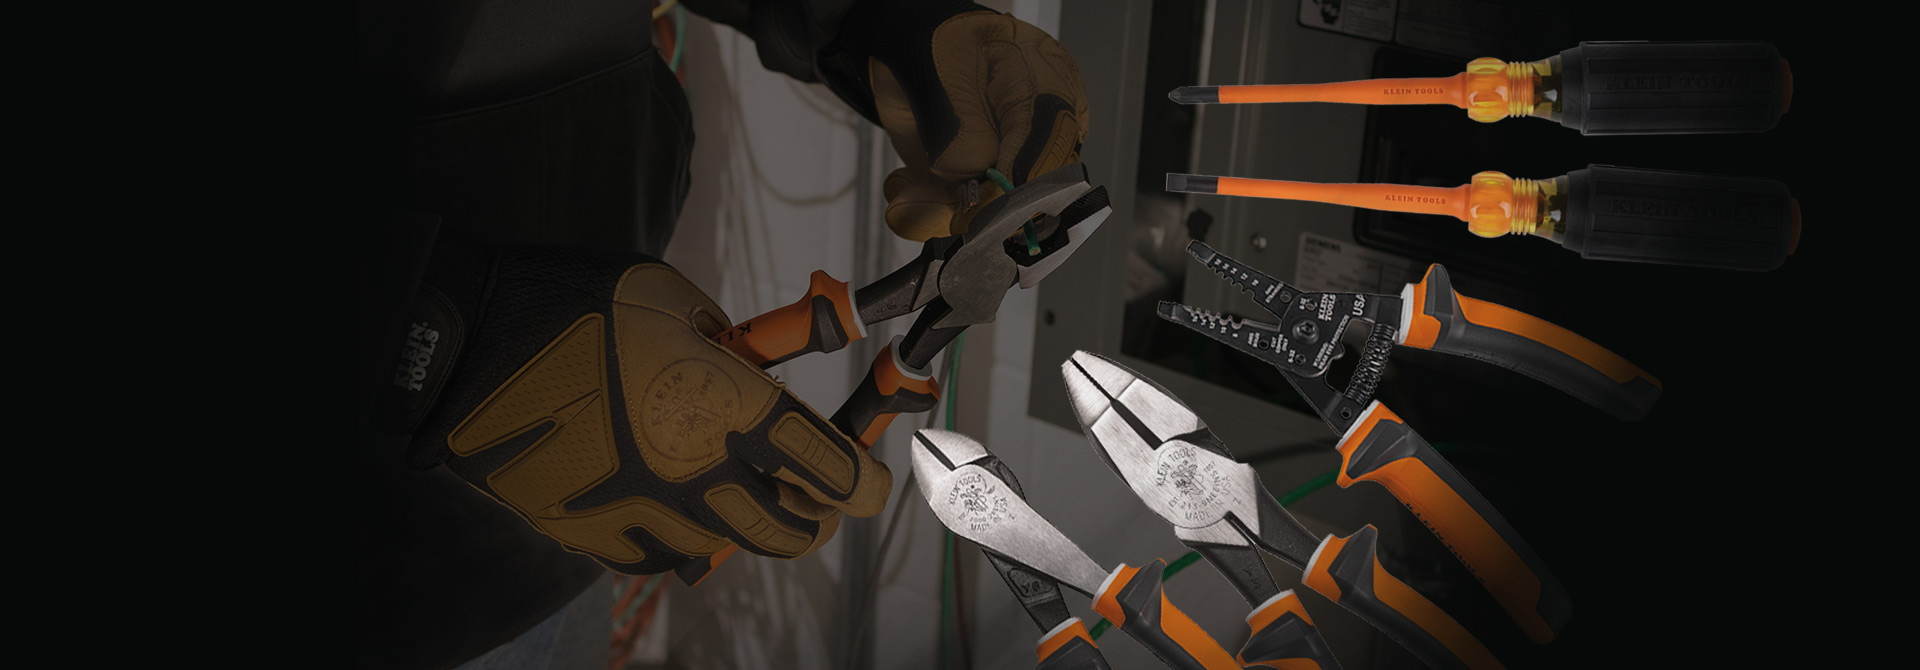 5-Piece Insulated Tool Kit